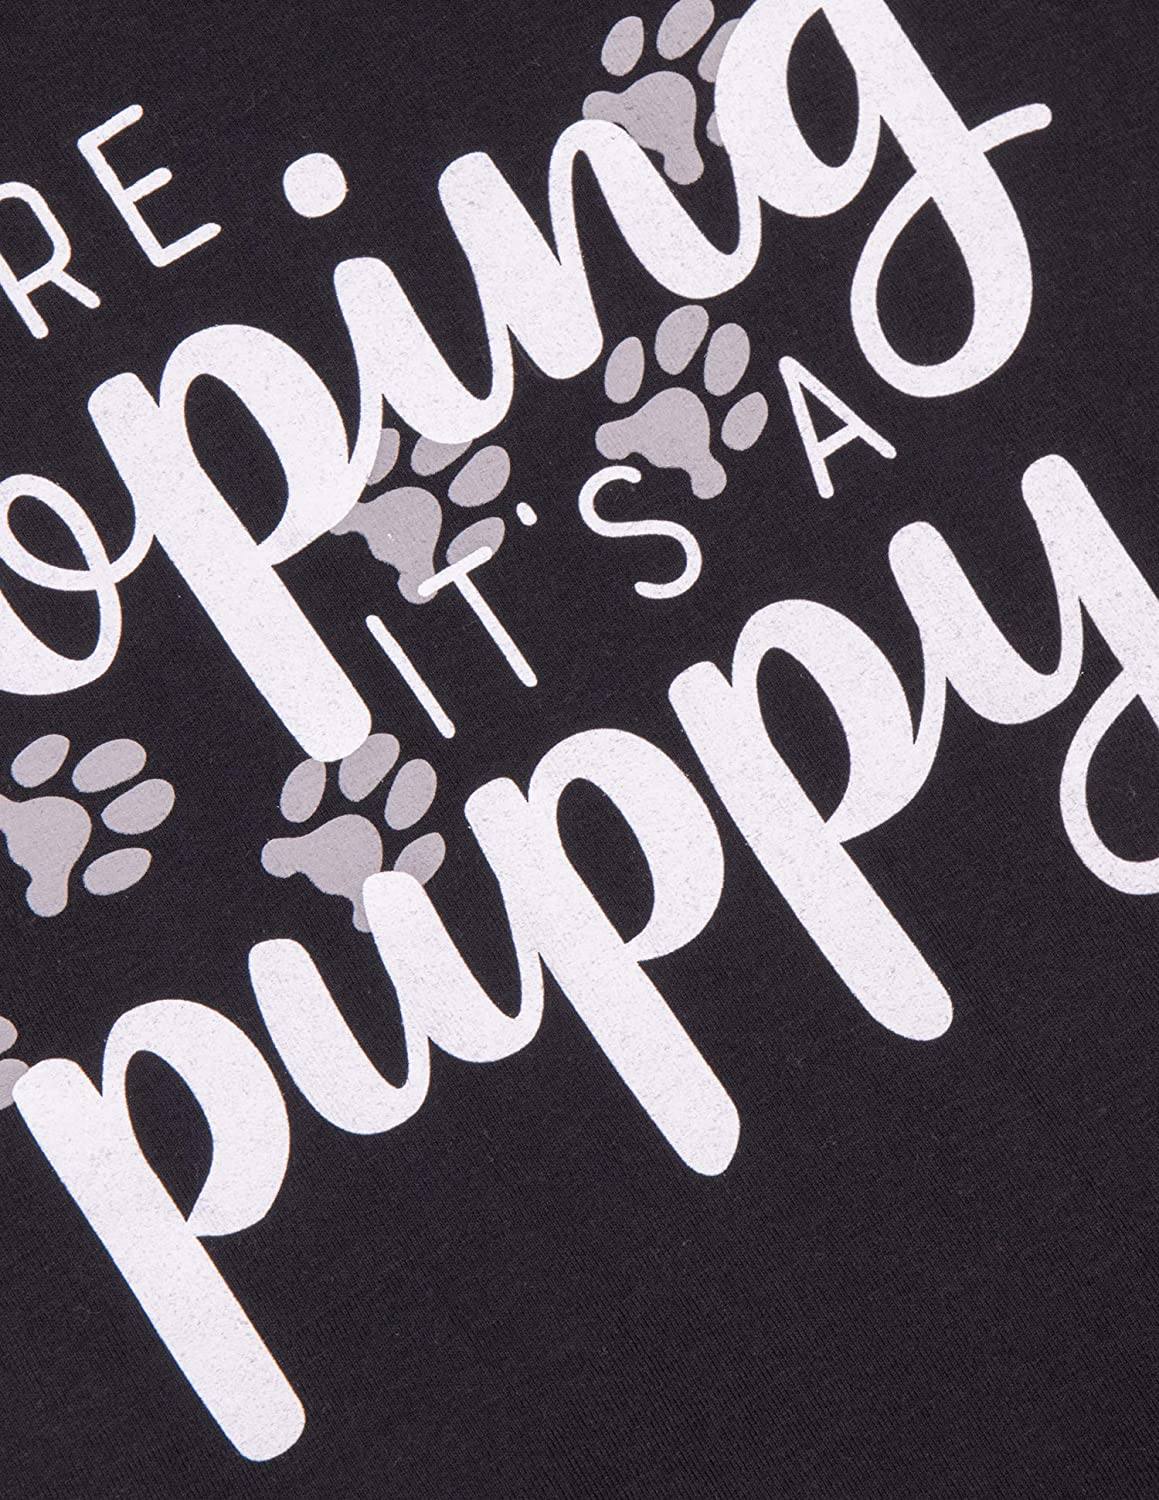 We/'re Hoping It/'s a Pony Black Maternity Soft T-Shirt